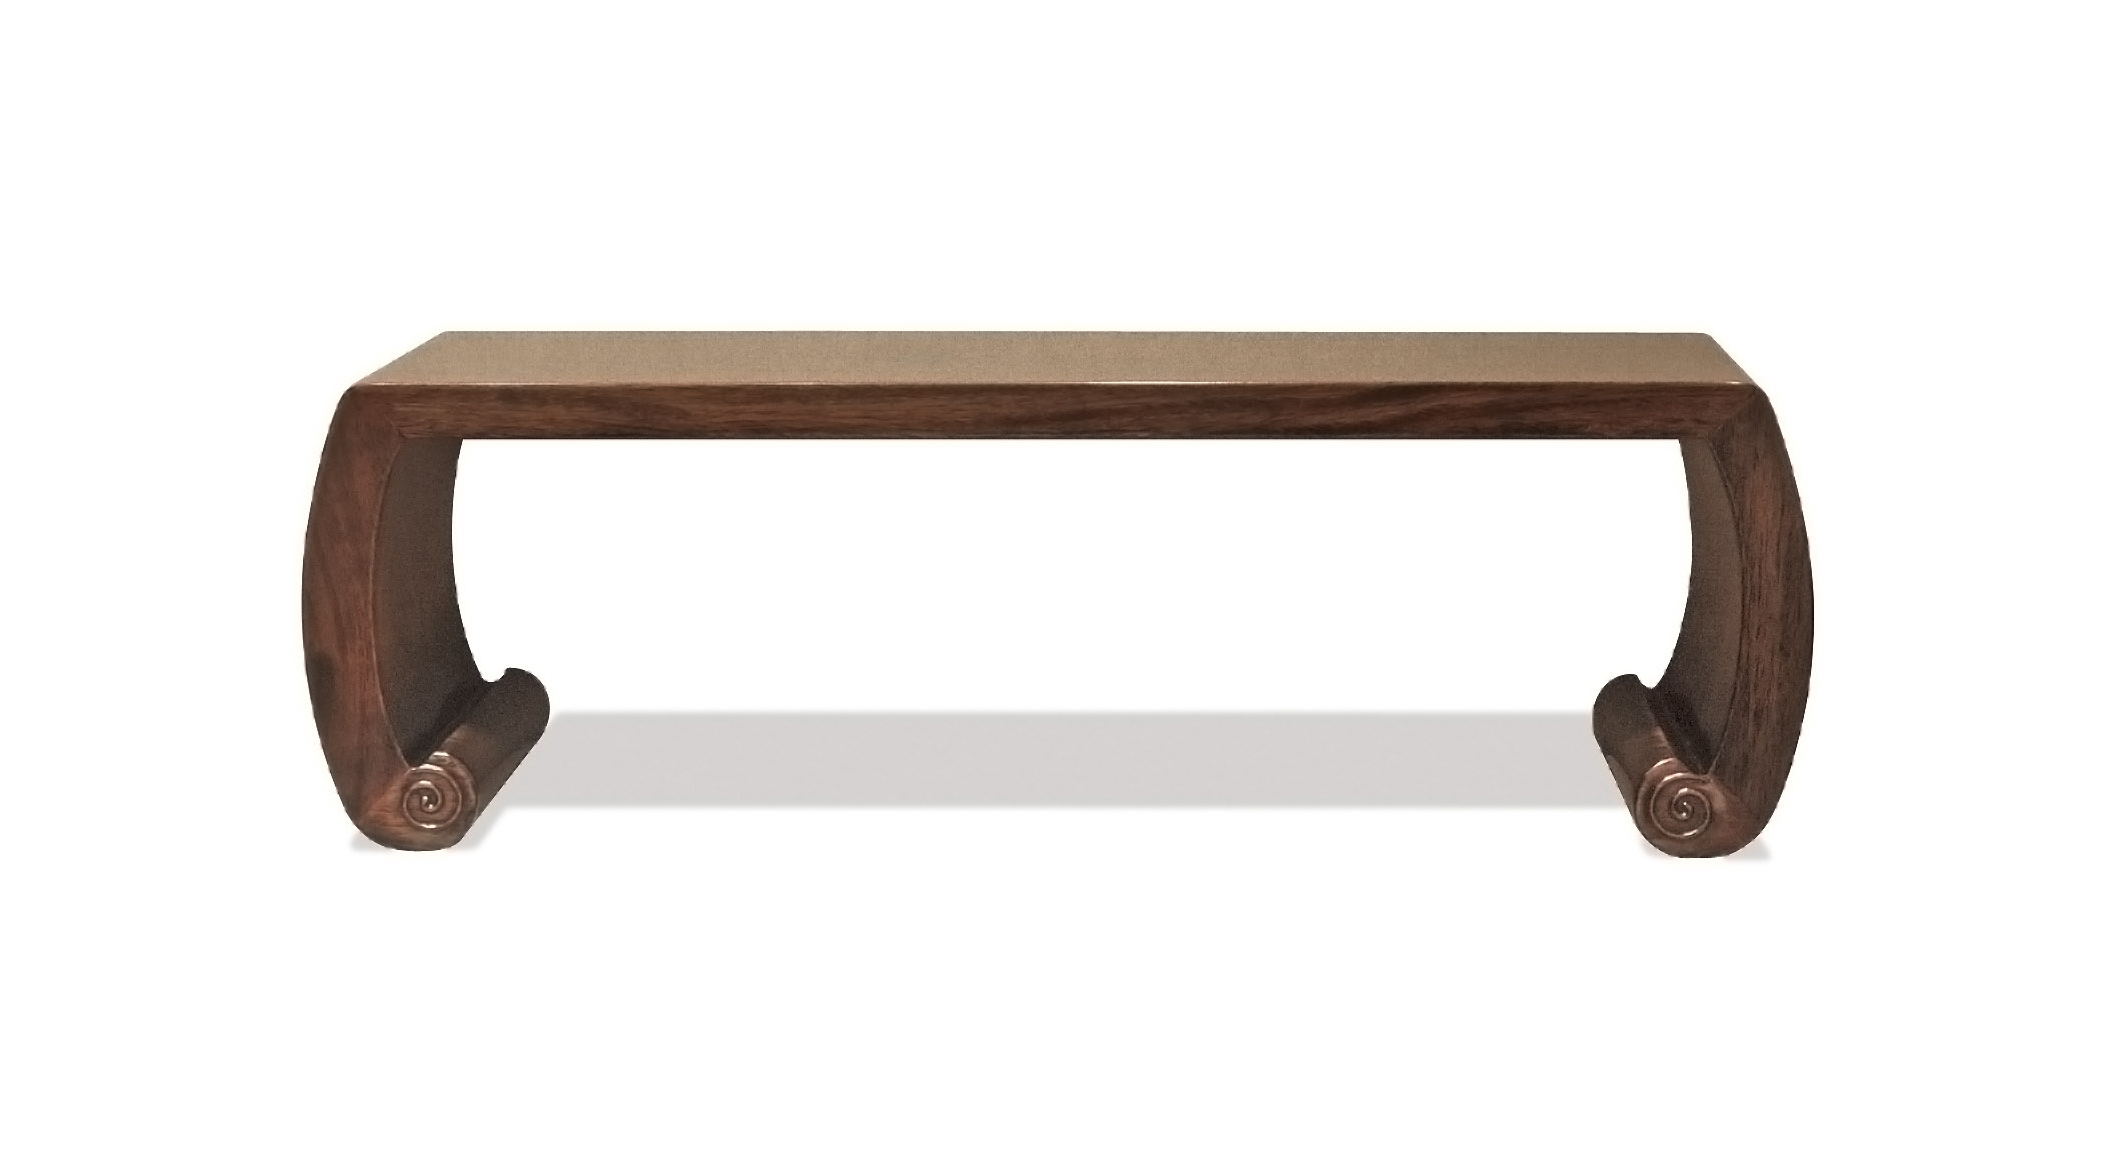 ....chinese ming style furniture : scroll table..中式明式家具 : 炕台....